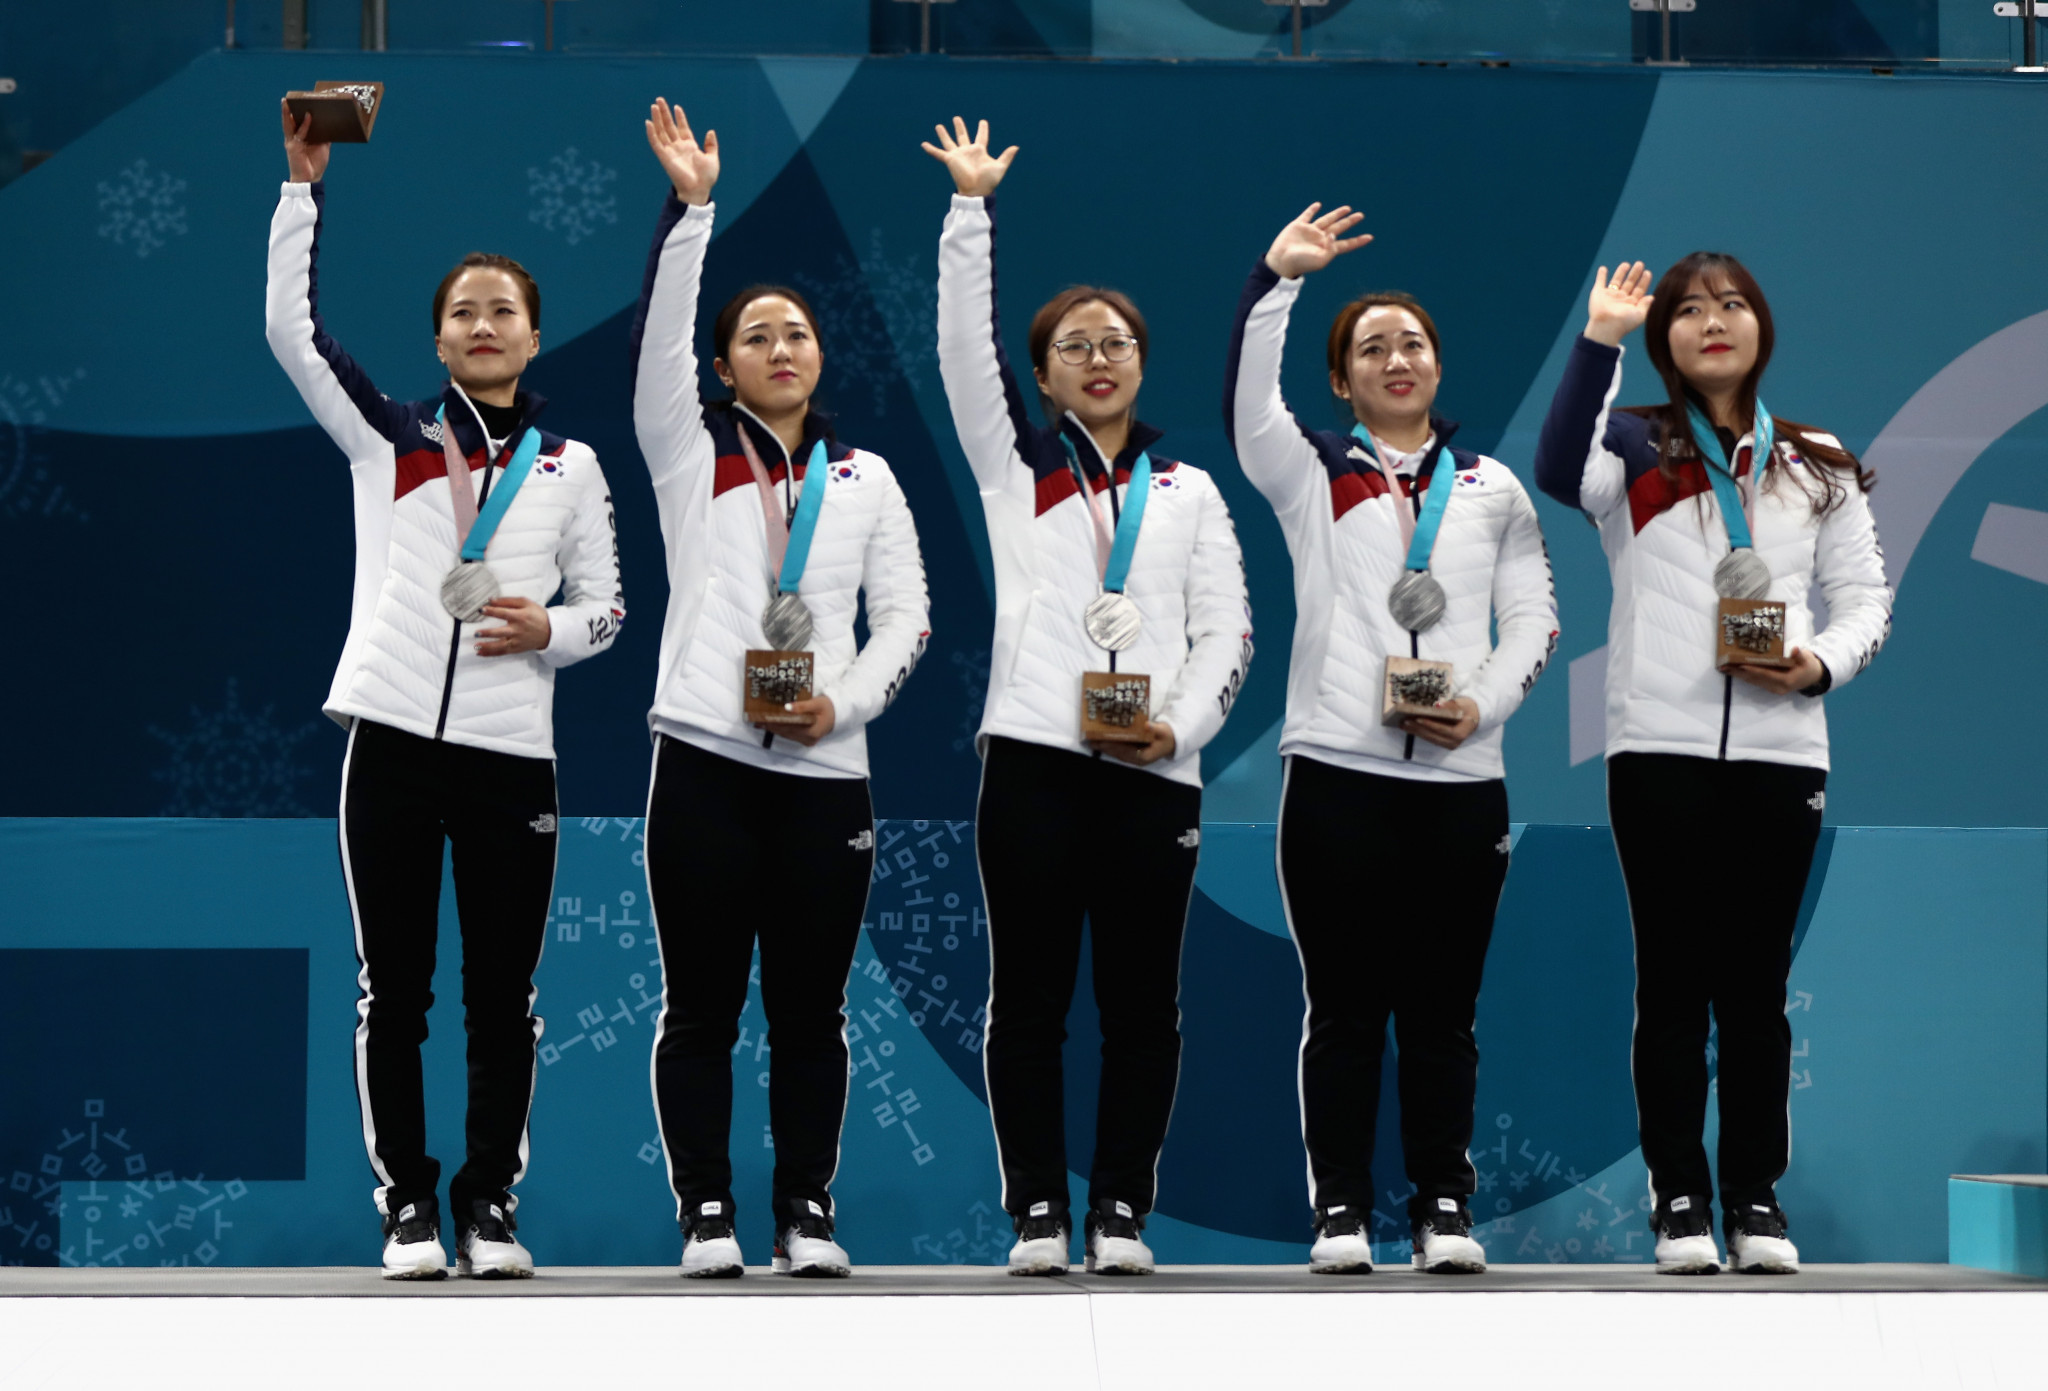 """The """"Garlic Girls"""", as they were nicknamed, won South Korea's only ever curling Olympic medal at Pyeongchang 2018 ©Getty Images"""